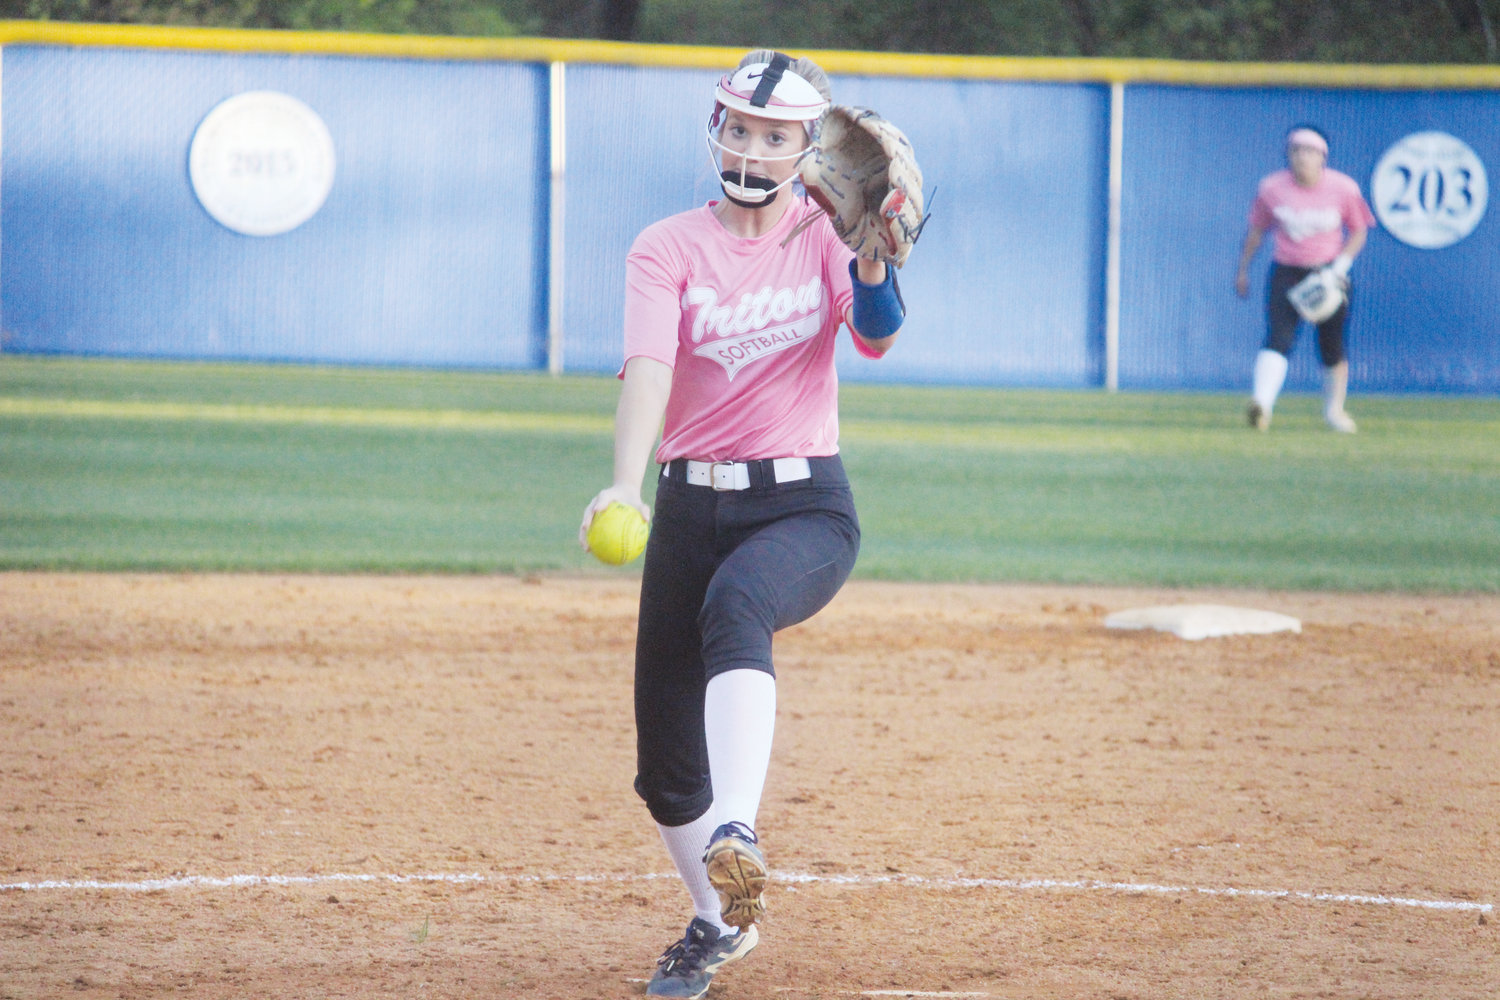 Caroline Marshall whips in a pitch. Donning a special 'pink out' jersey, Marshall picked up her sixth win of the season in Triton's 4-2 victory over Union Pines.